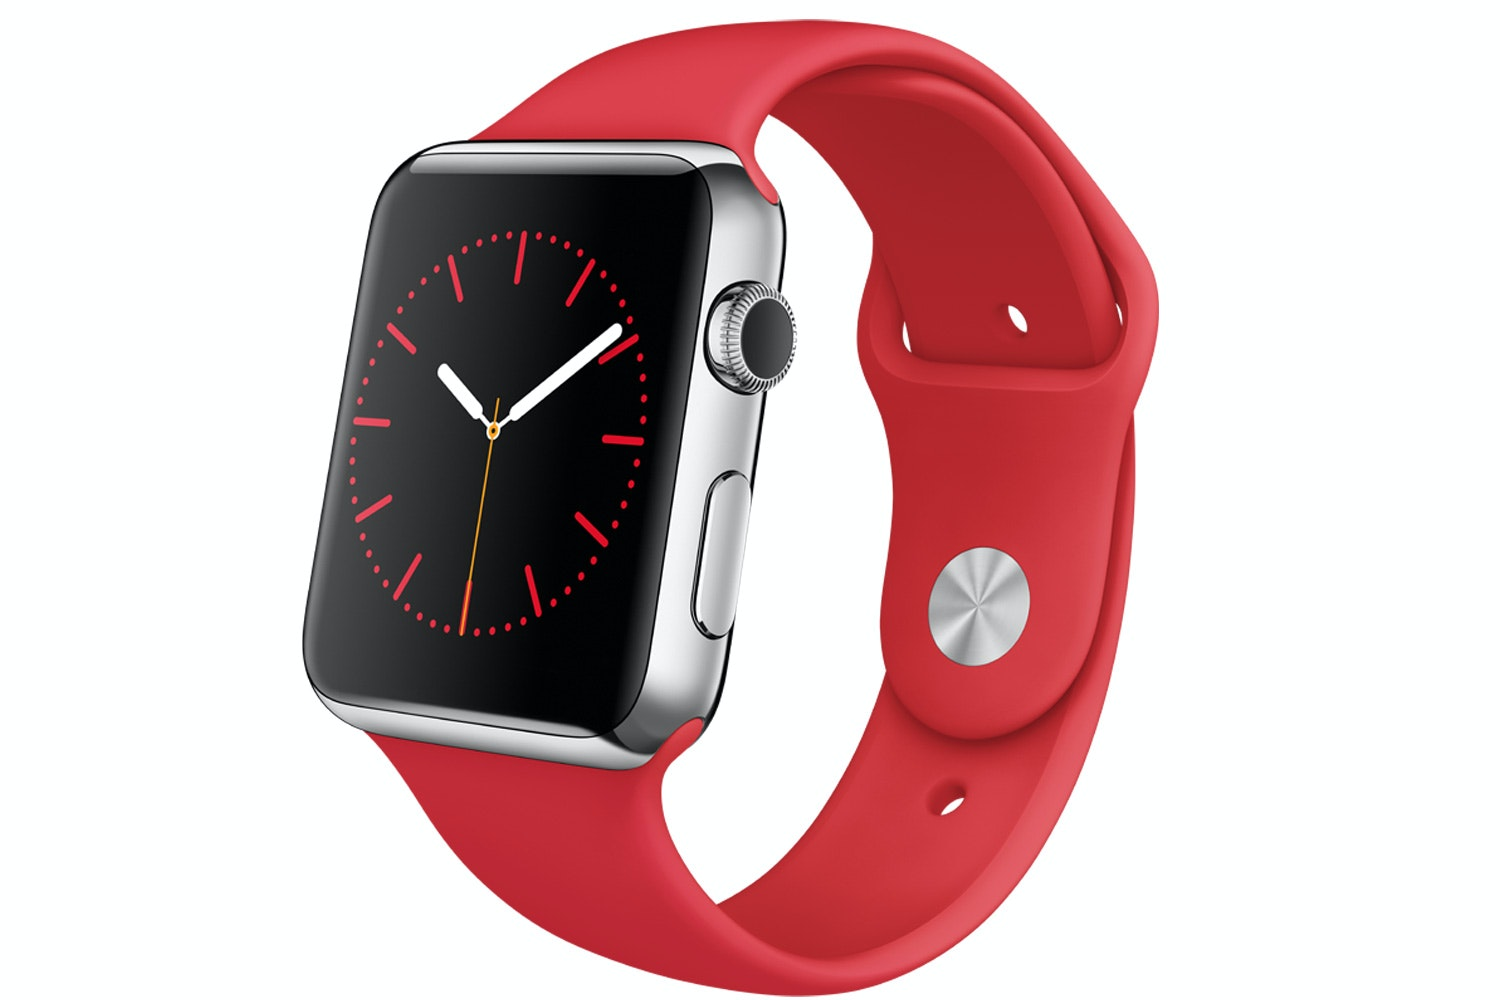 Apple Watch | 42mm Stainless Steel Case with (PRODUCT)RED Sport Band